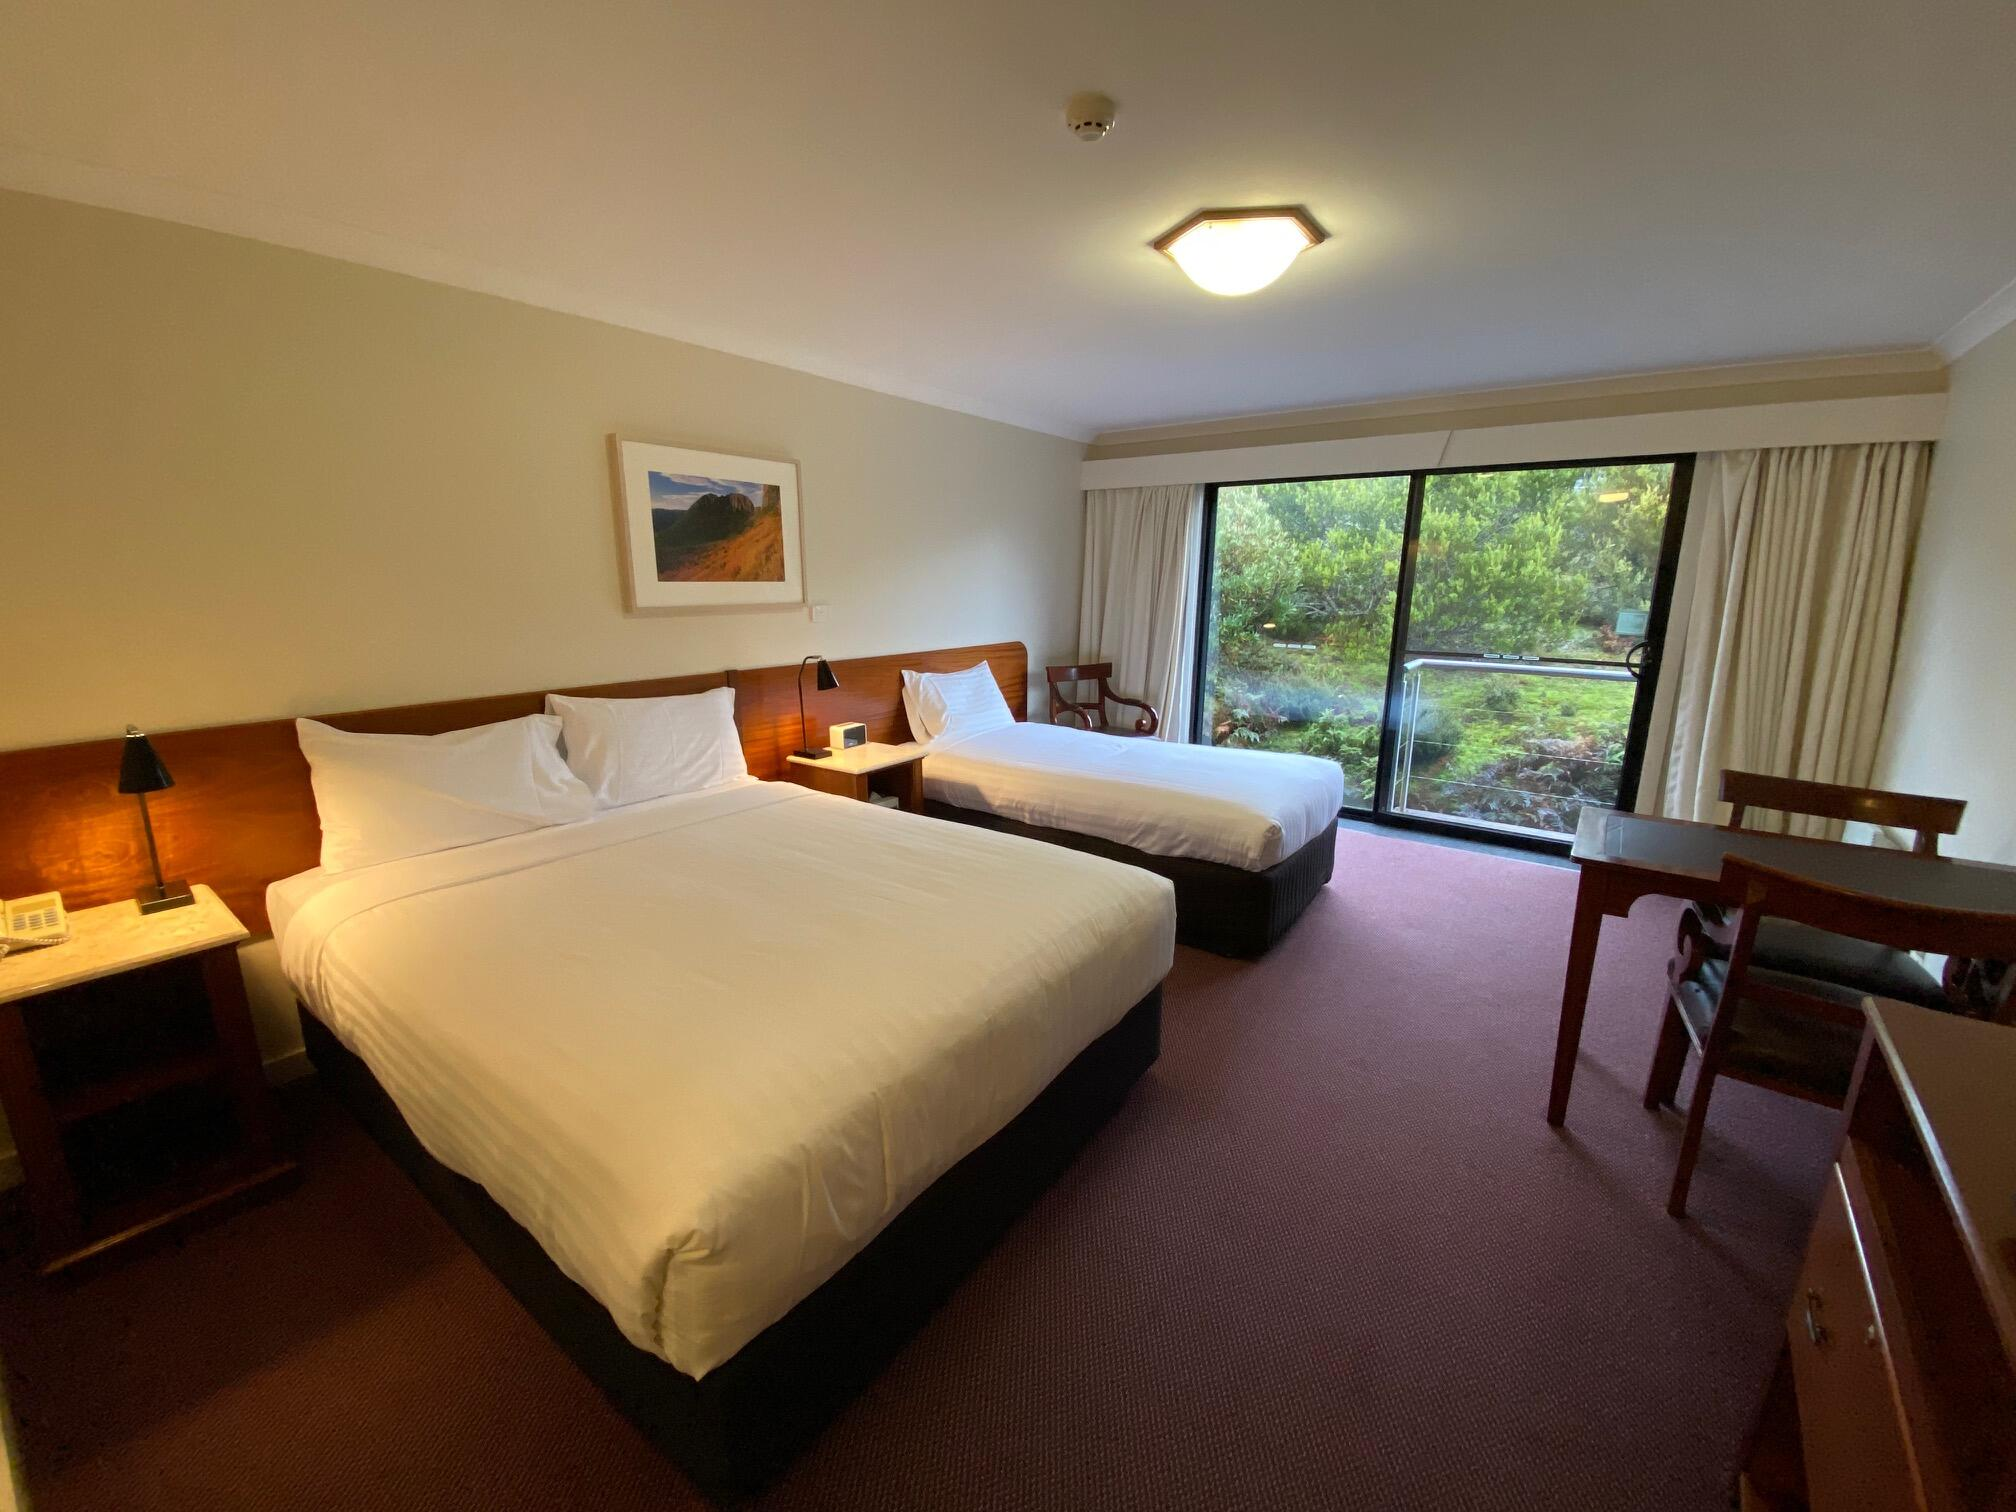 Standard Room with 2 queen beds at Cradle Mountain Hotel